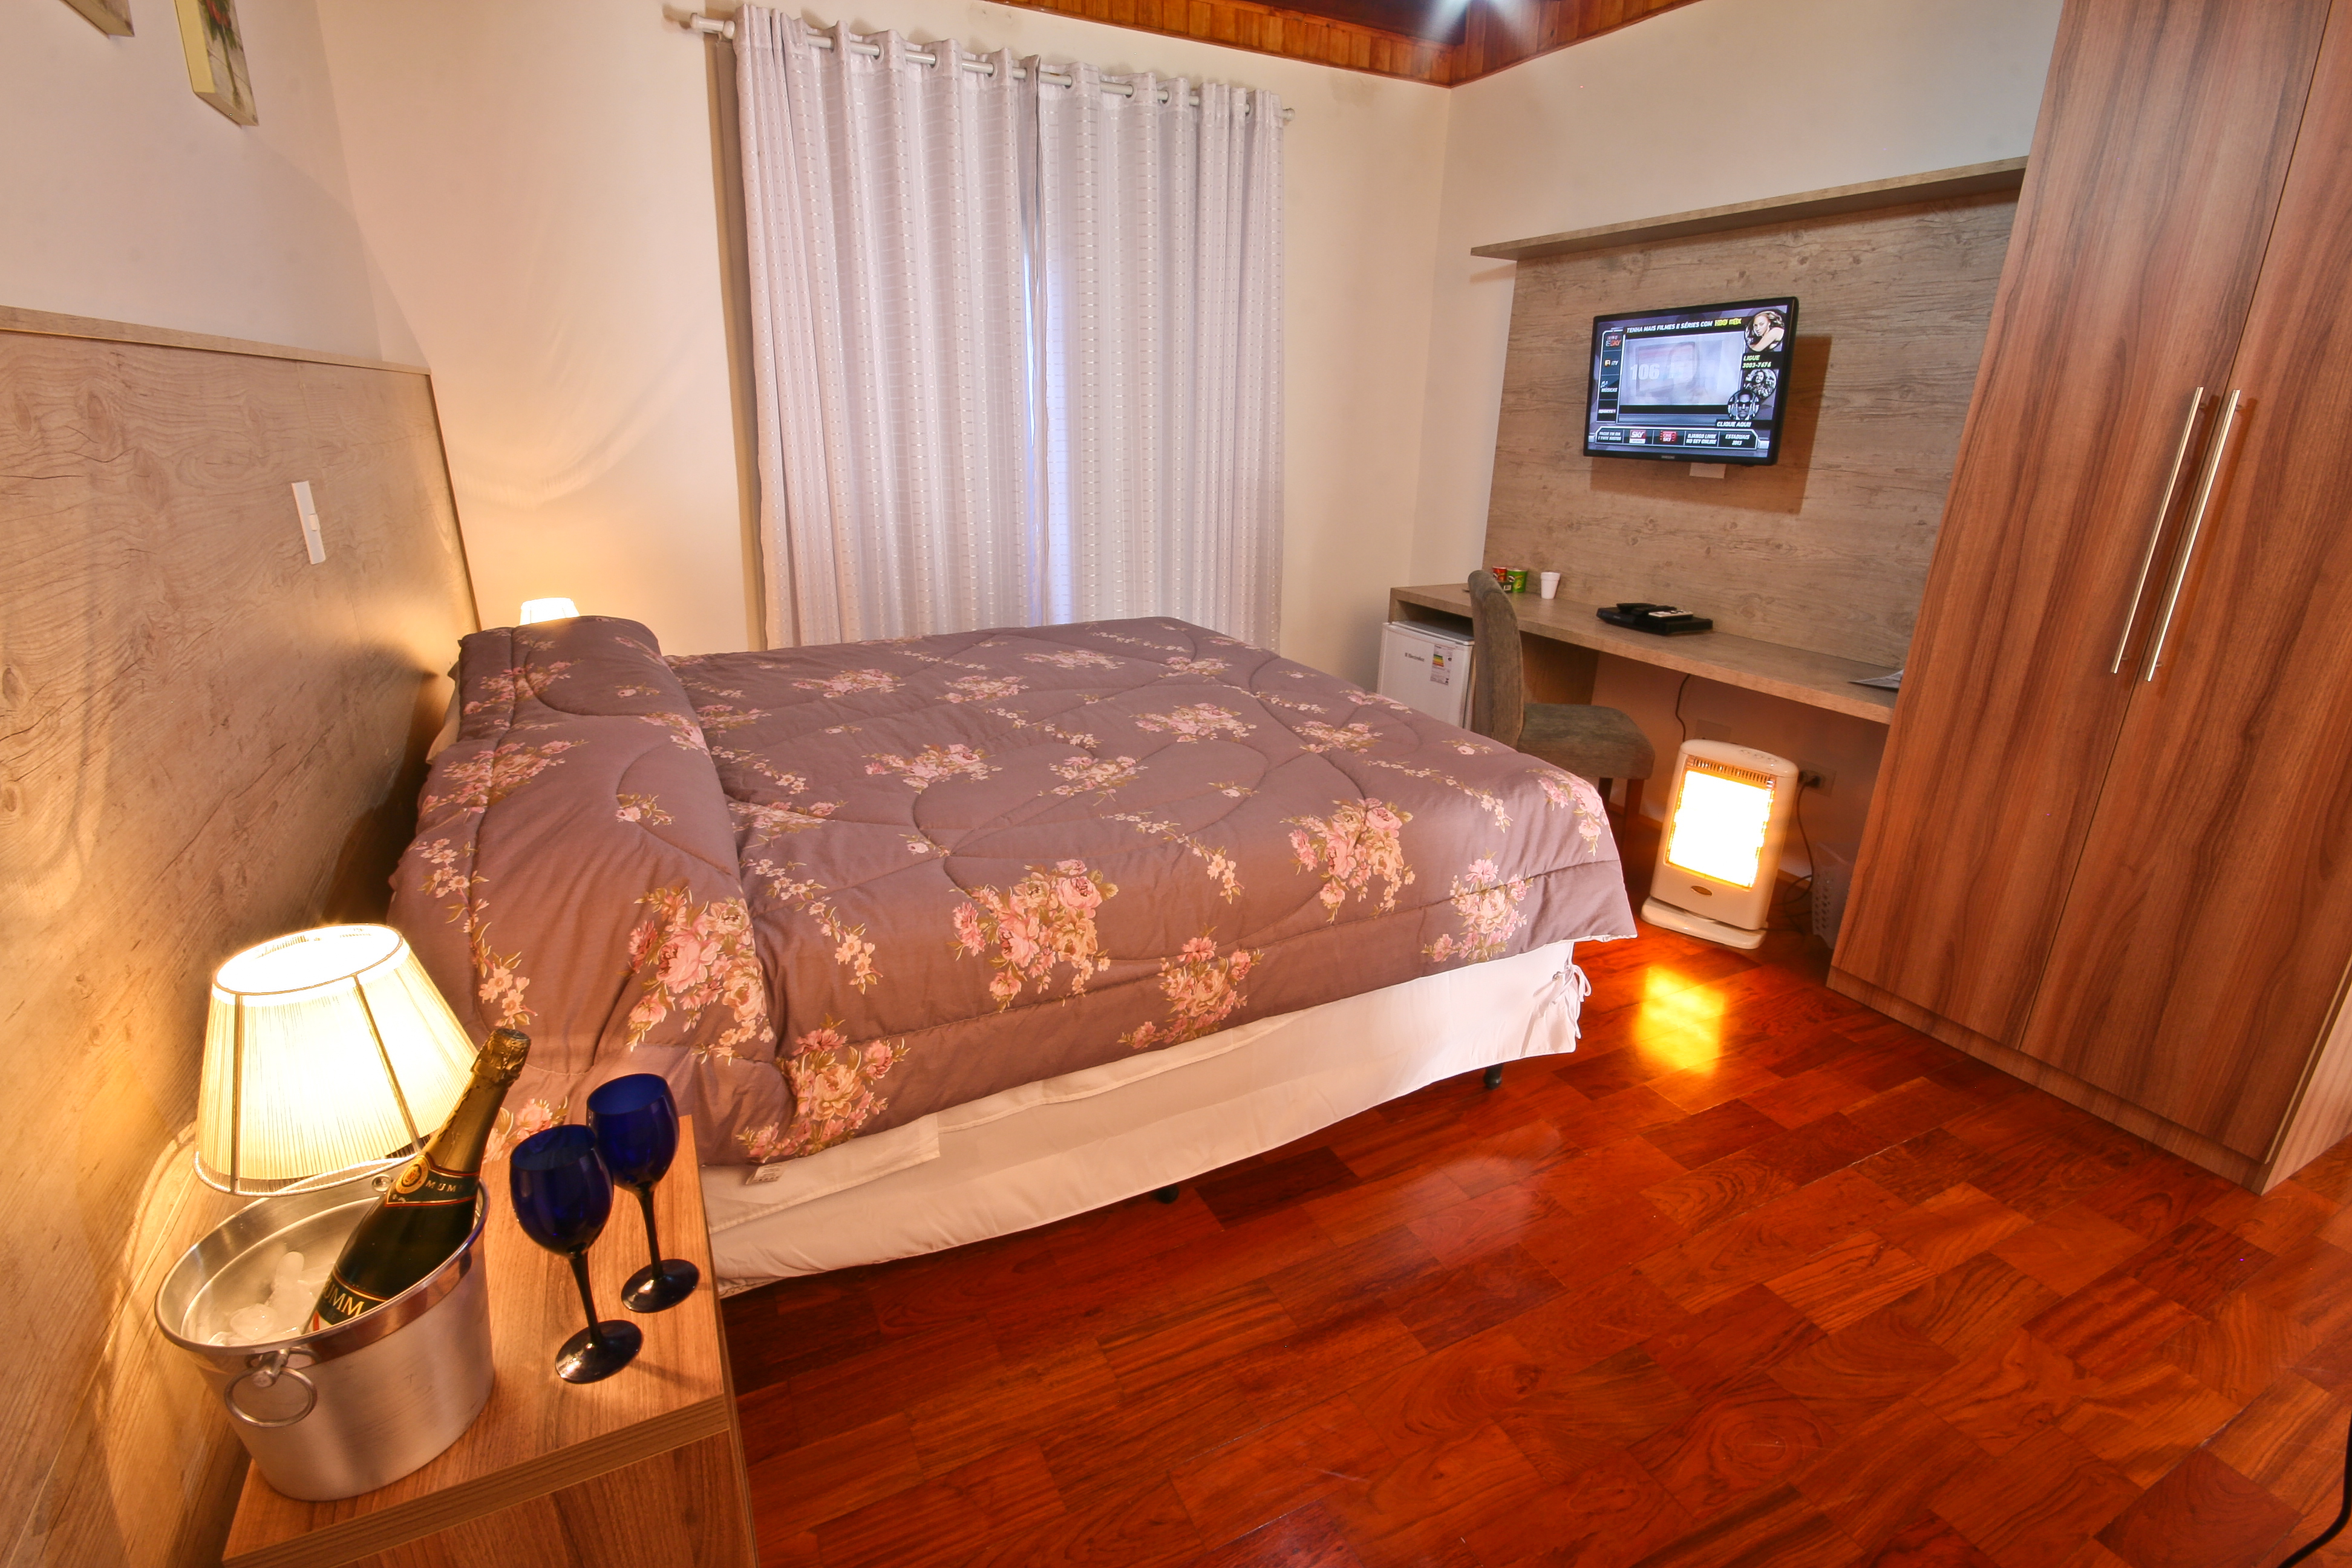 apartamento-golde-forest-campos-do-jordao-06